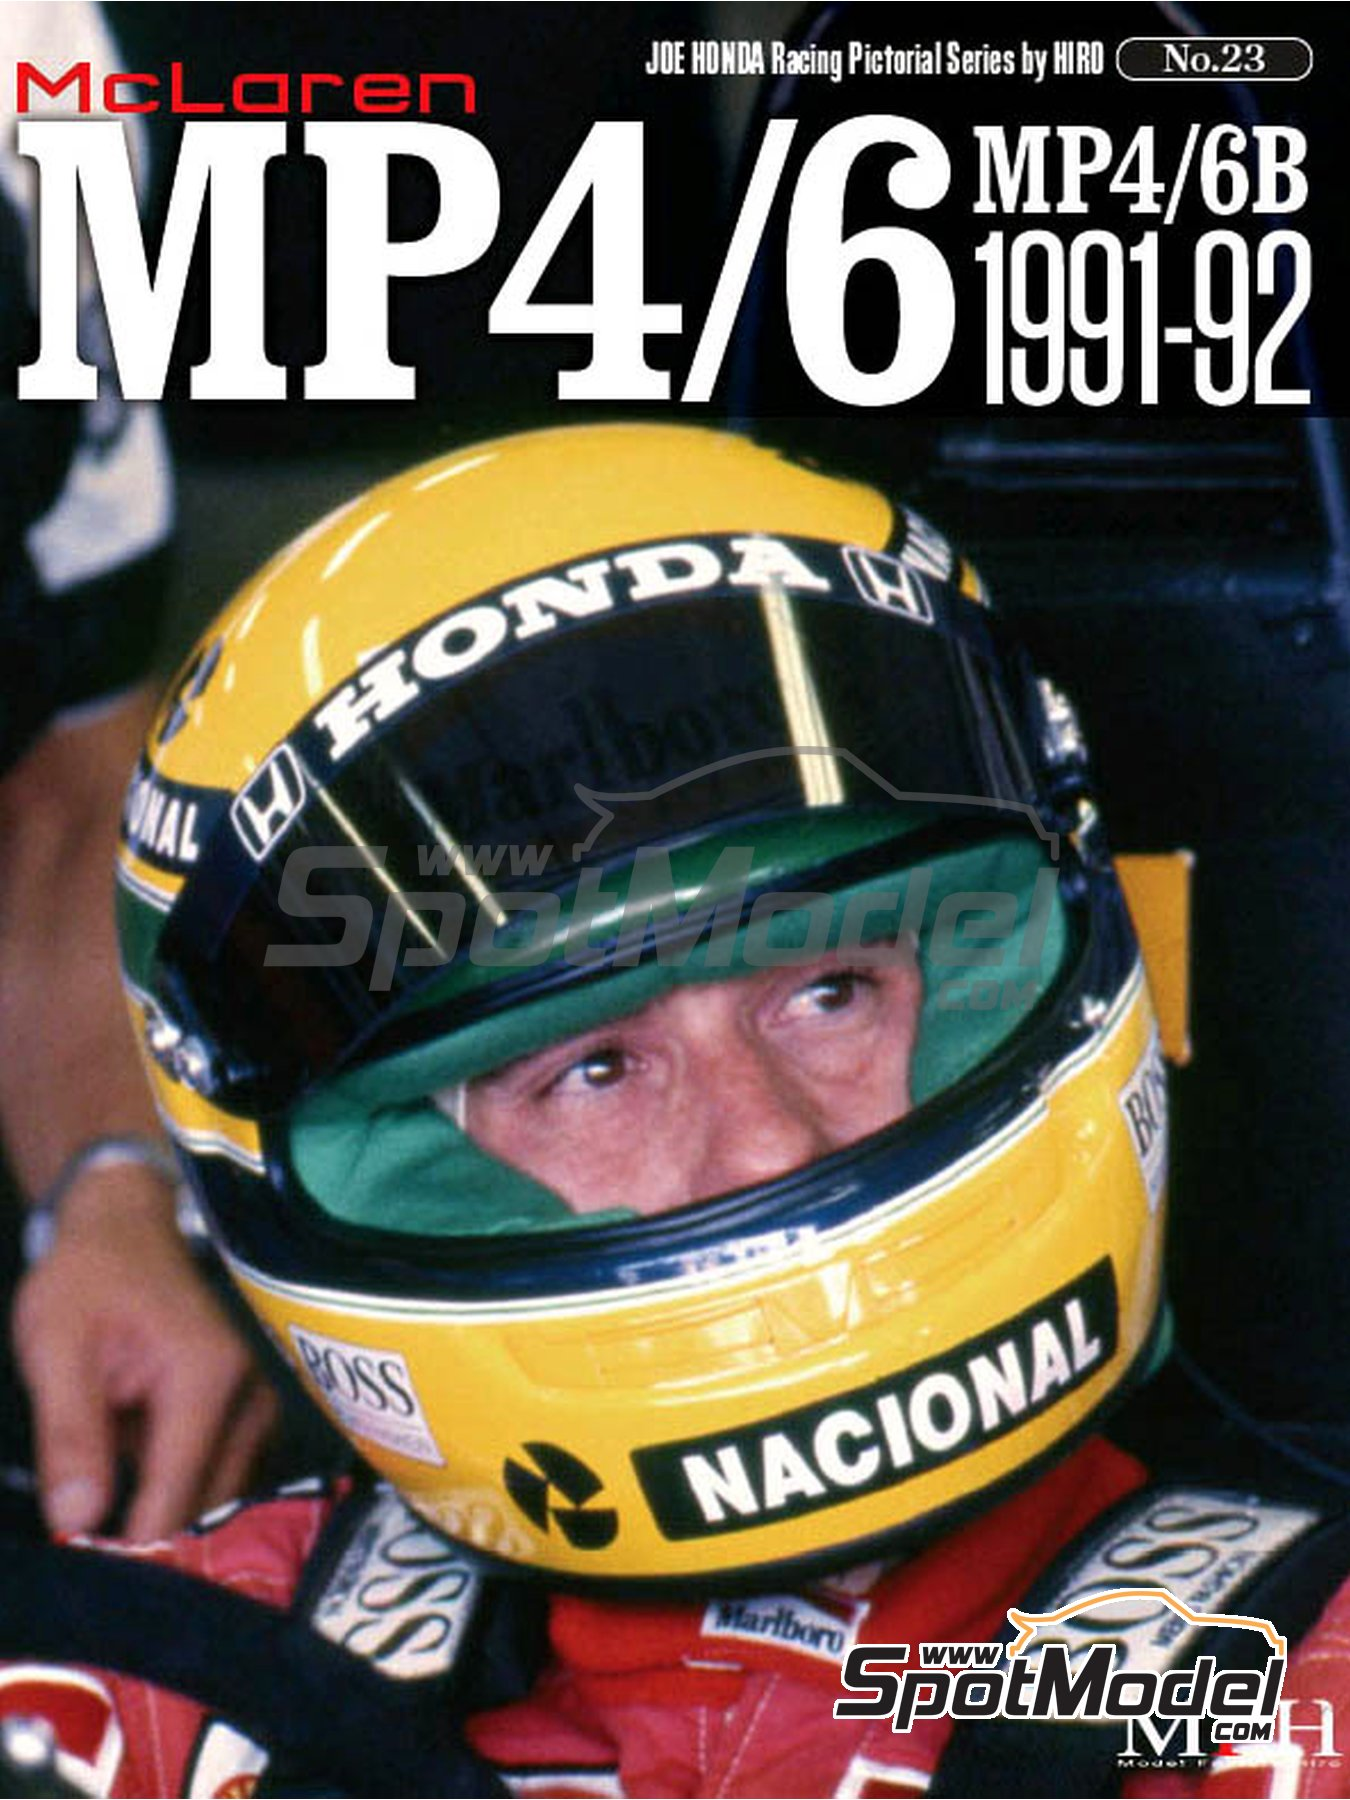 JOE HONDA Racing Pictorial Series - Mc Laren MP4/6B - MP4/6 -  1991 y 1992 | Libro de referencia fabricado por Model Factory Hiro (ref. MFH-JH23) image